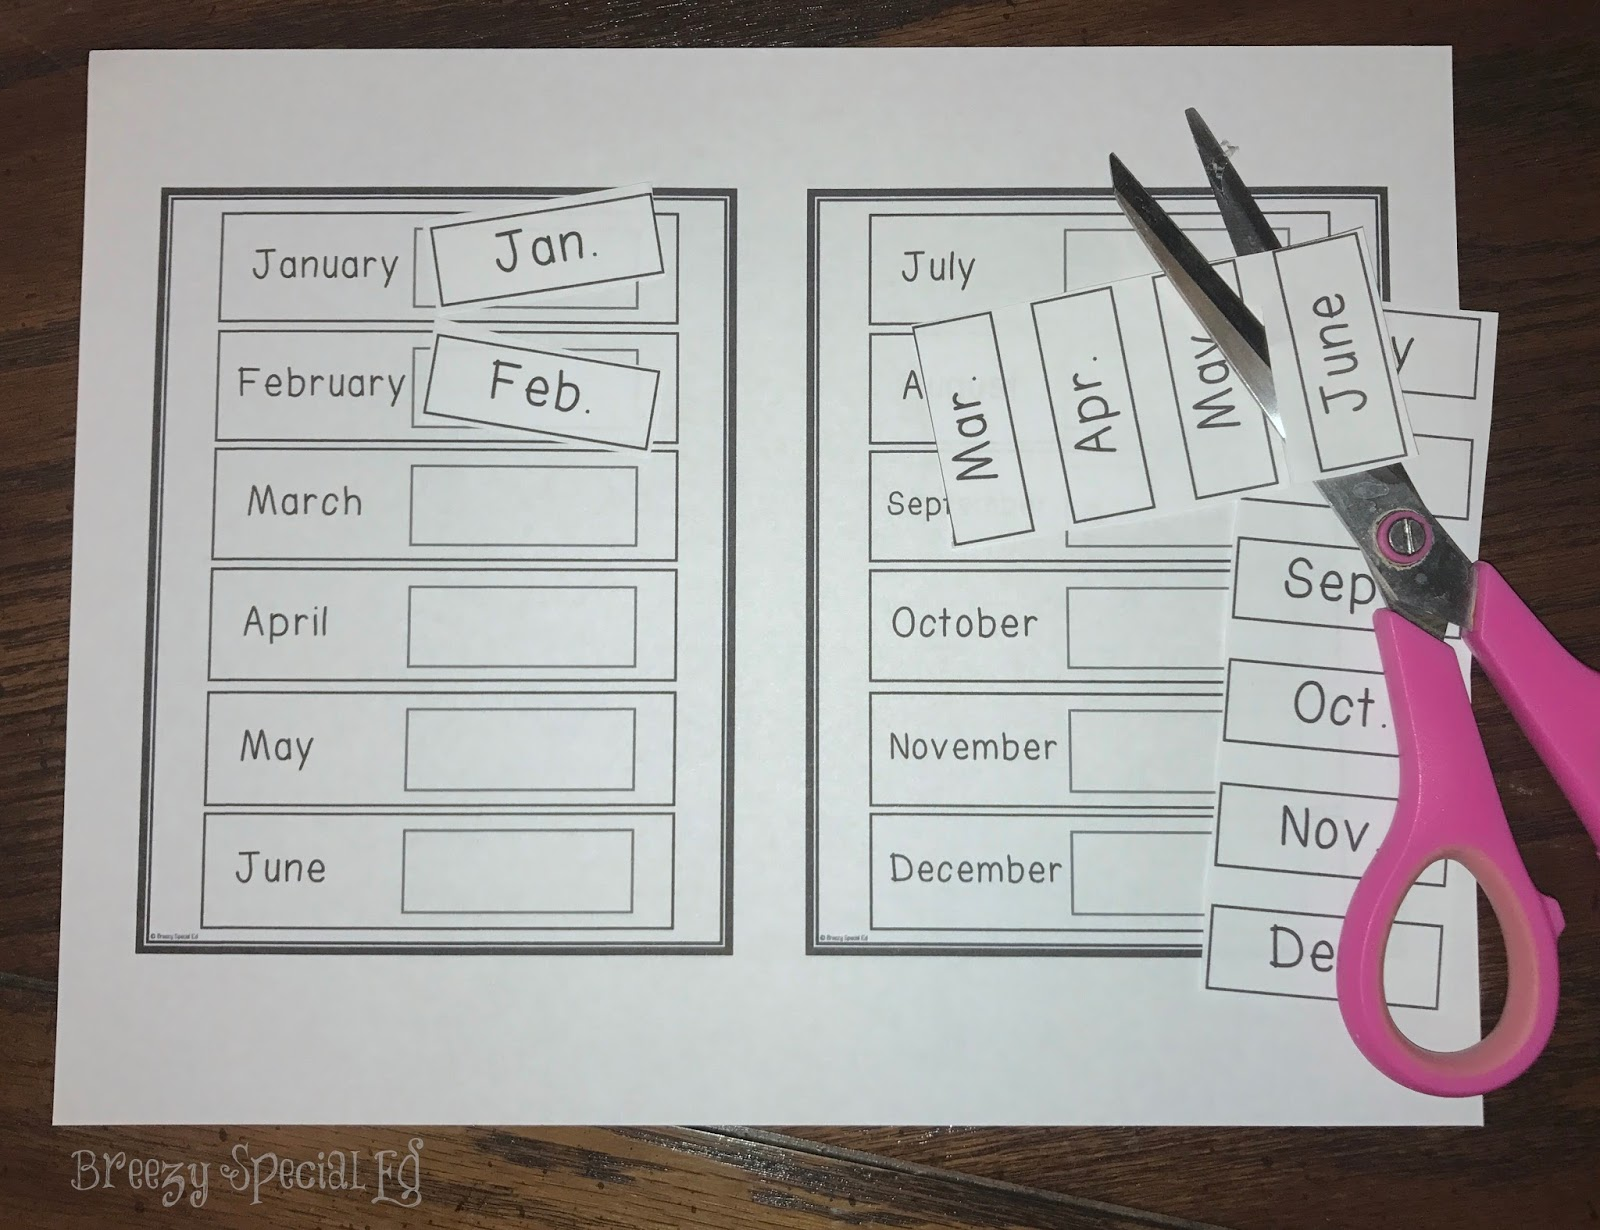 5 Things To Know When Printing Online Resources